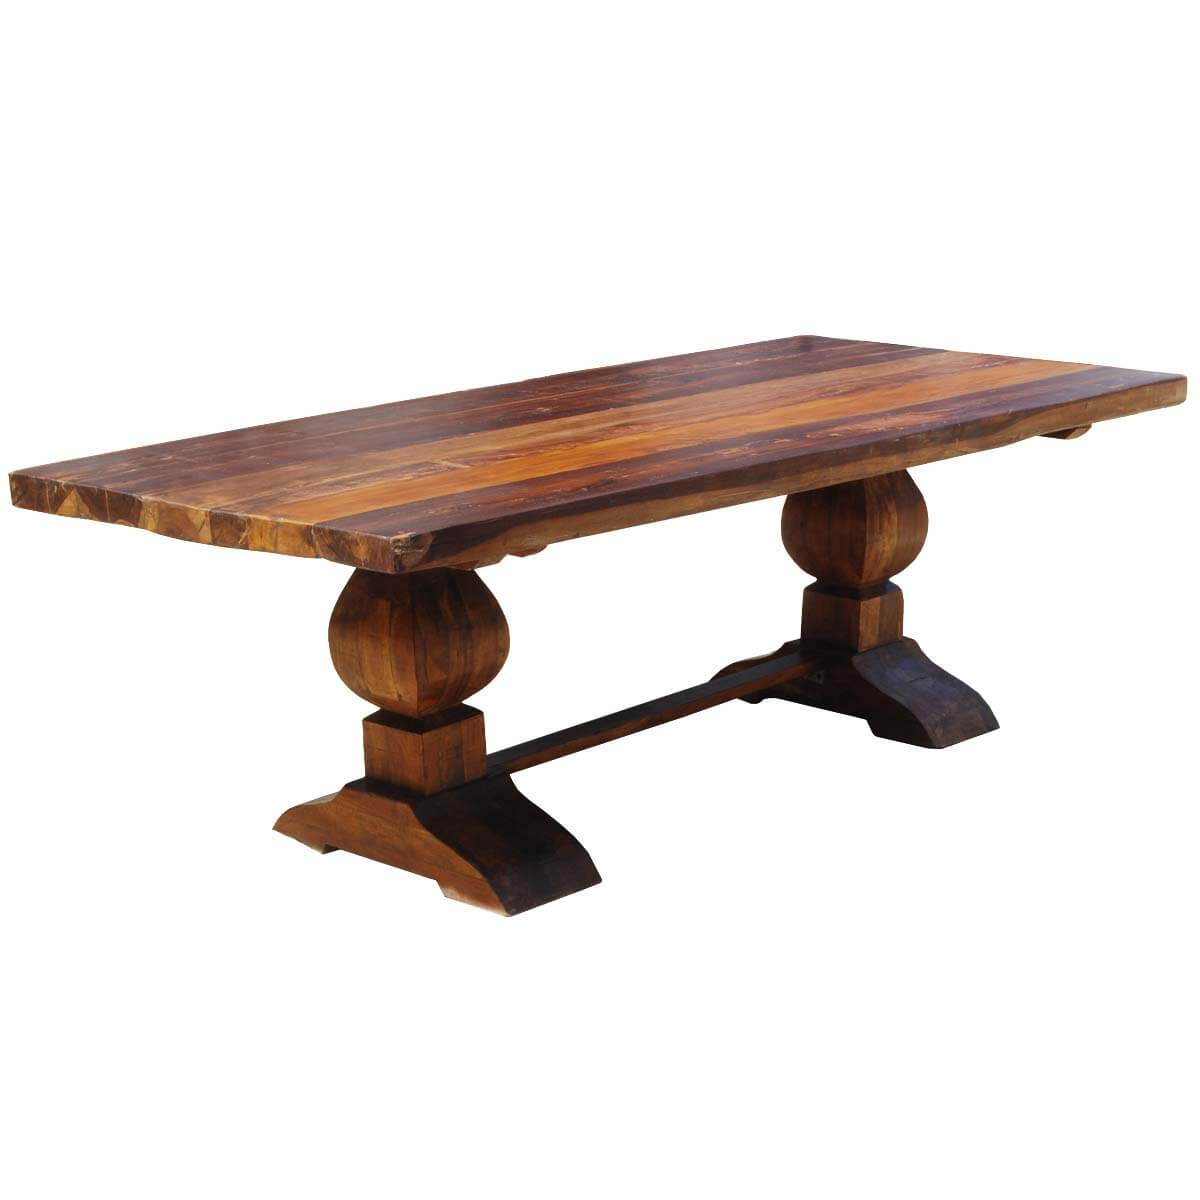 Rustic Wooden Dining Tables ~ Large rustic reclaimed wood double trestle pedestal dining